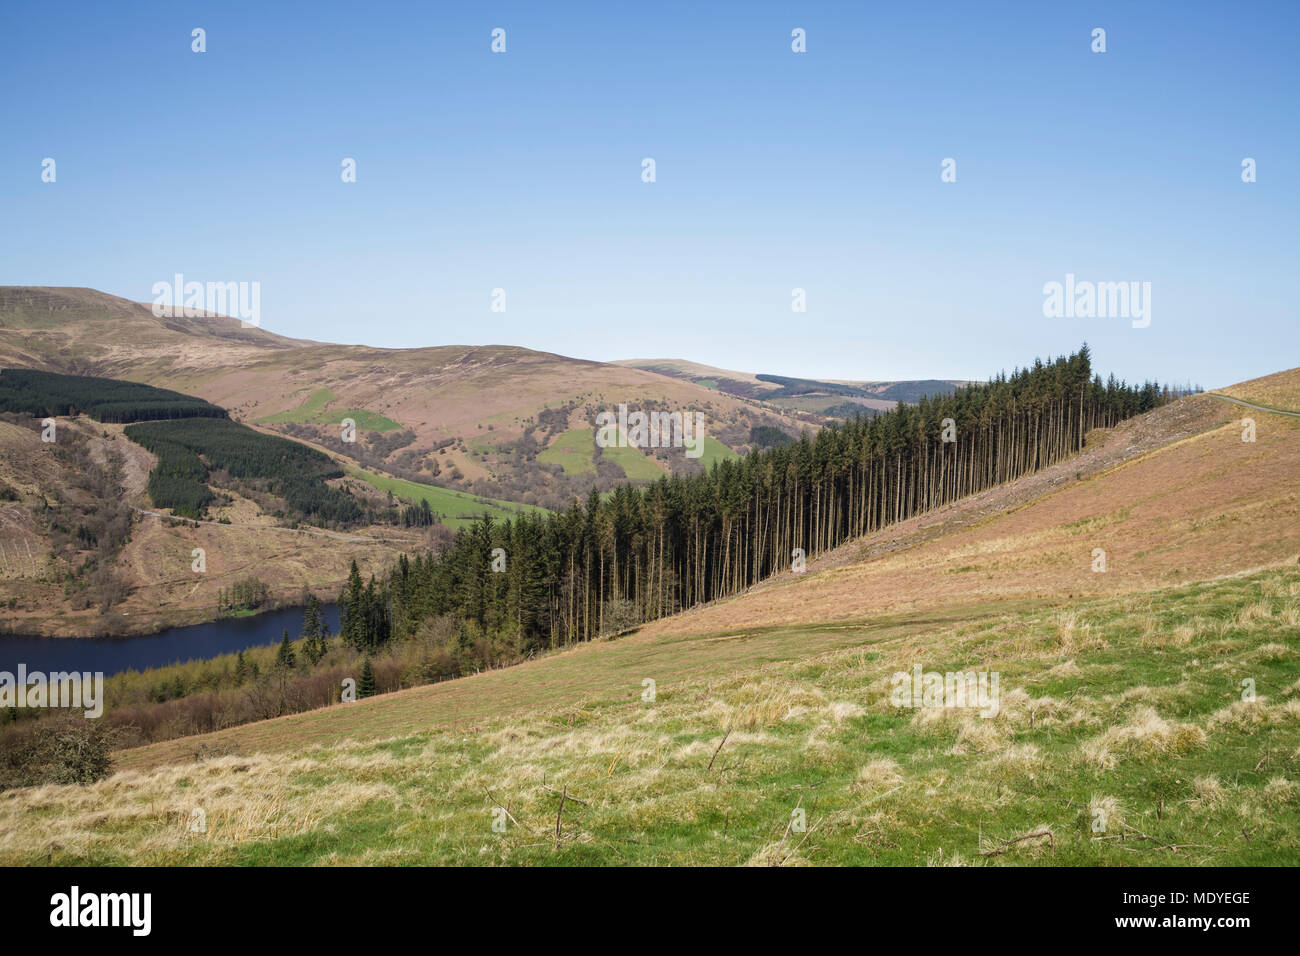 Talybont Valley in the Brecon Beacons National Park - Stock Image